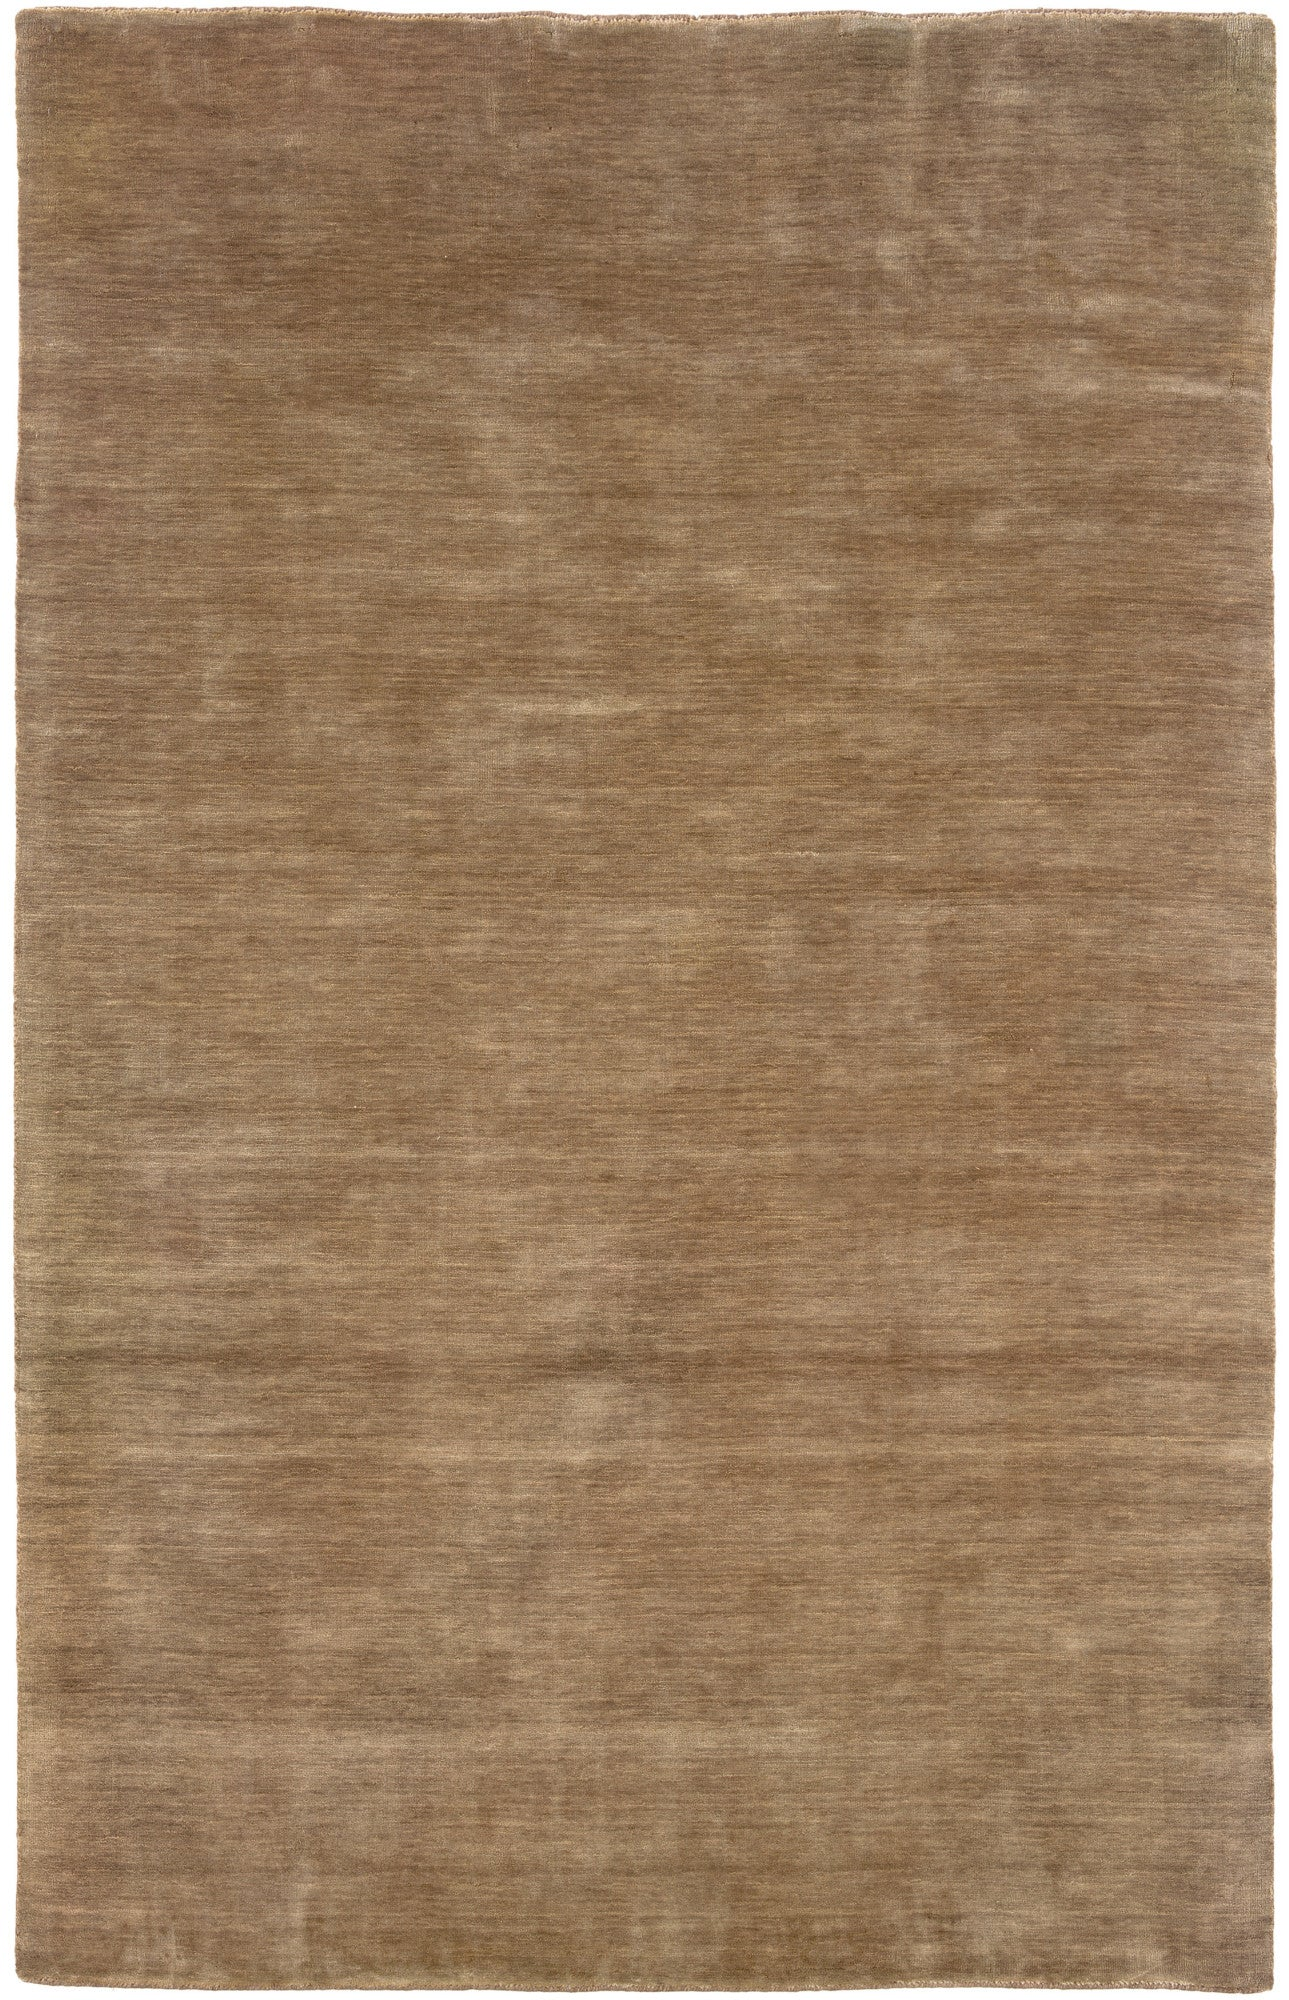 LR Resources Loom Seridian 03812 Taupe Area Rug